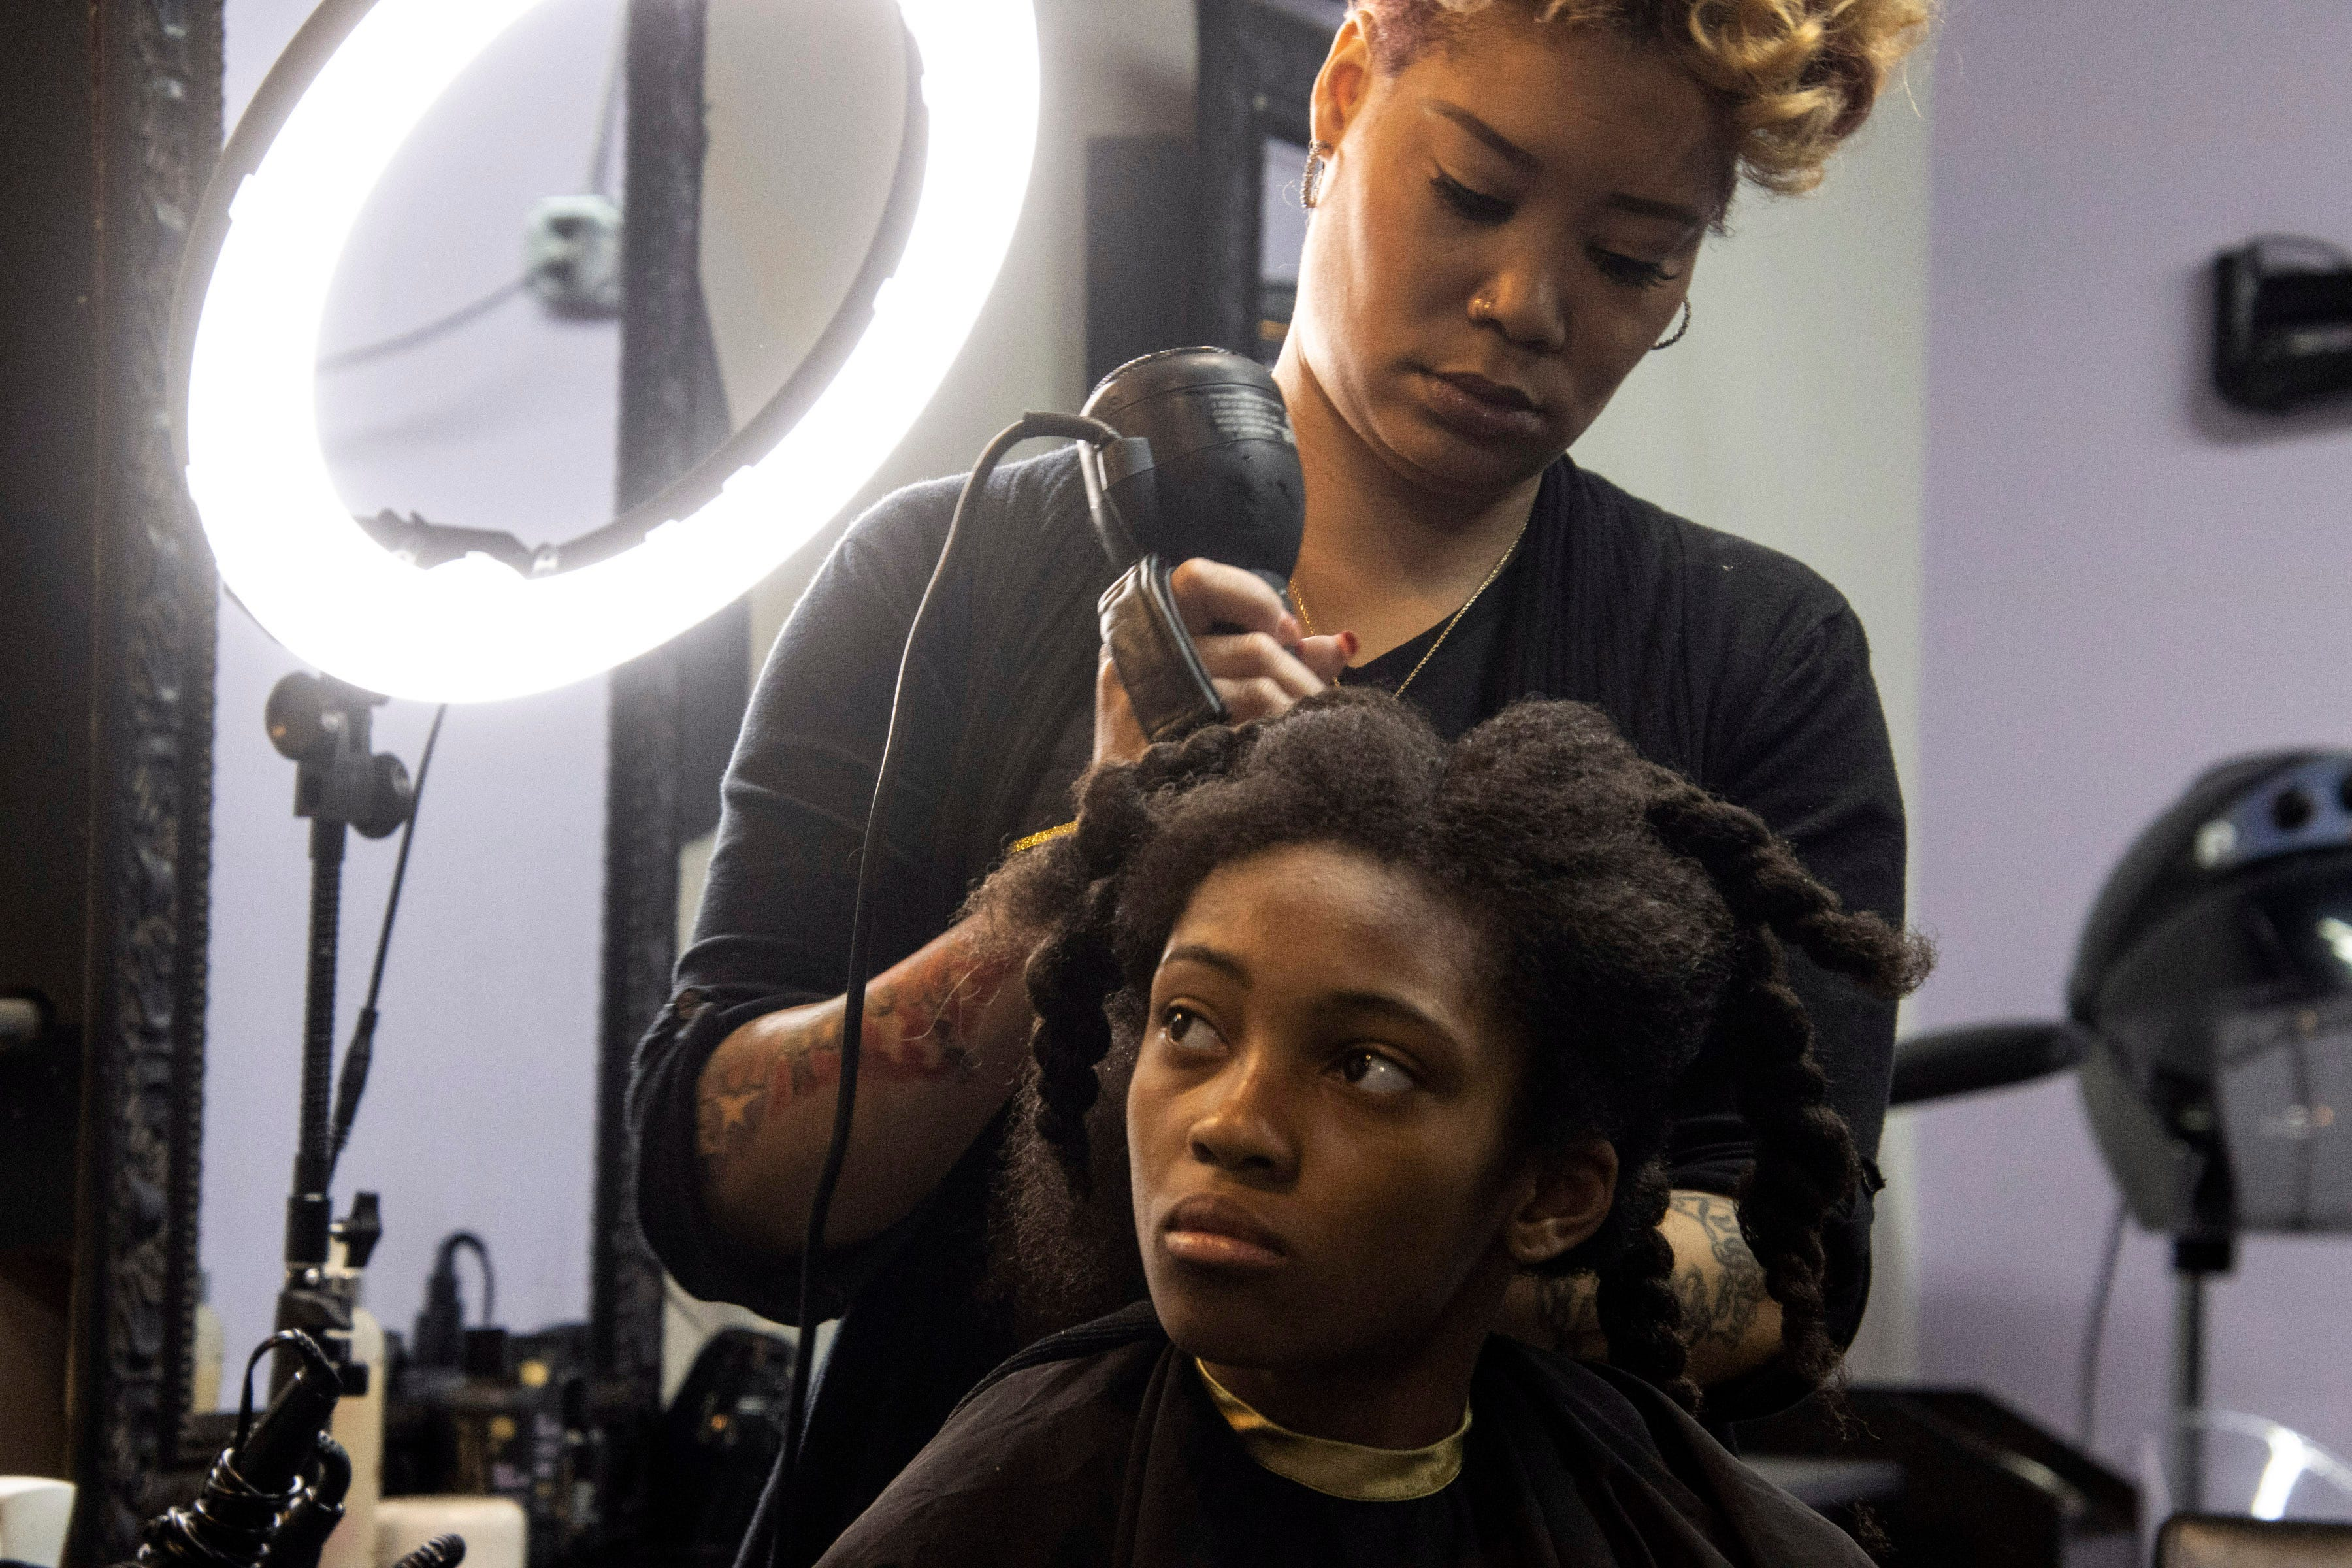 Salons mourn loss of community during COVID-10 but cautious to reopen